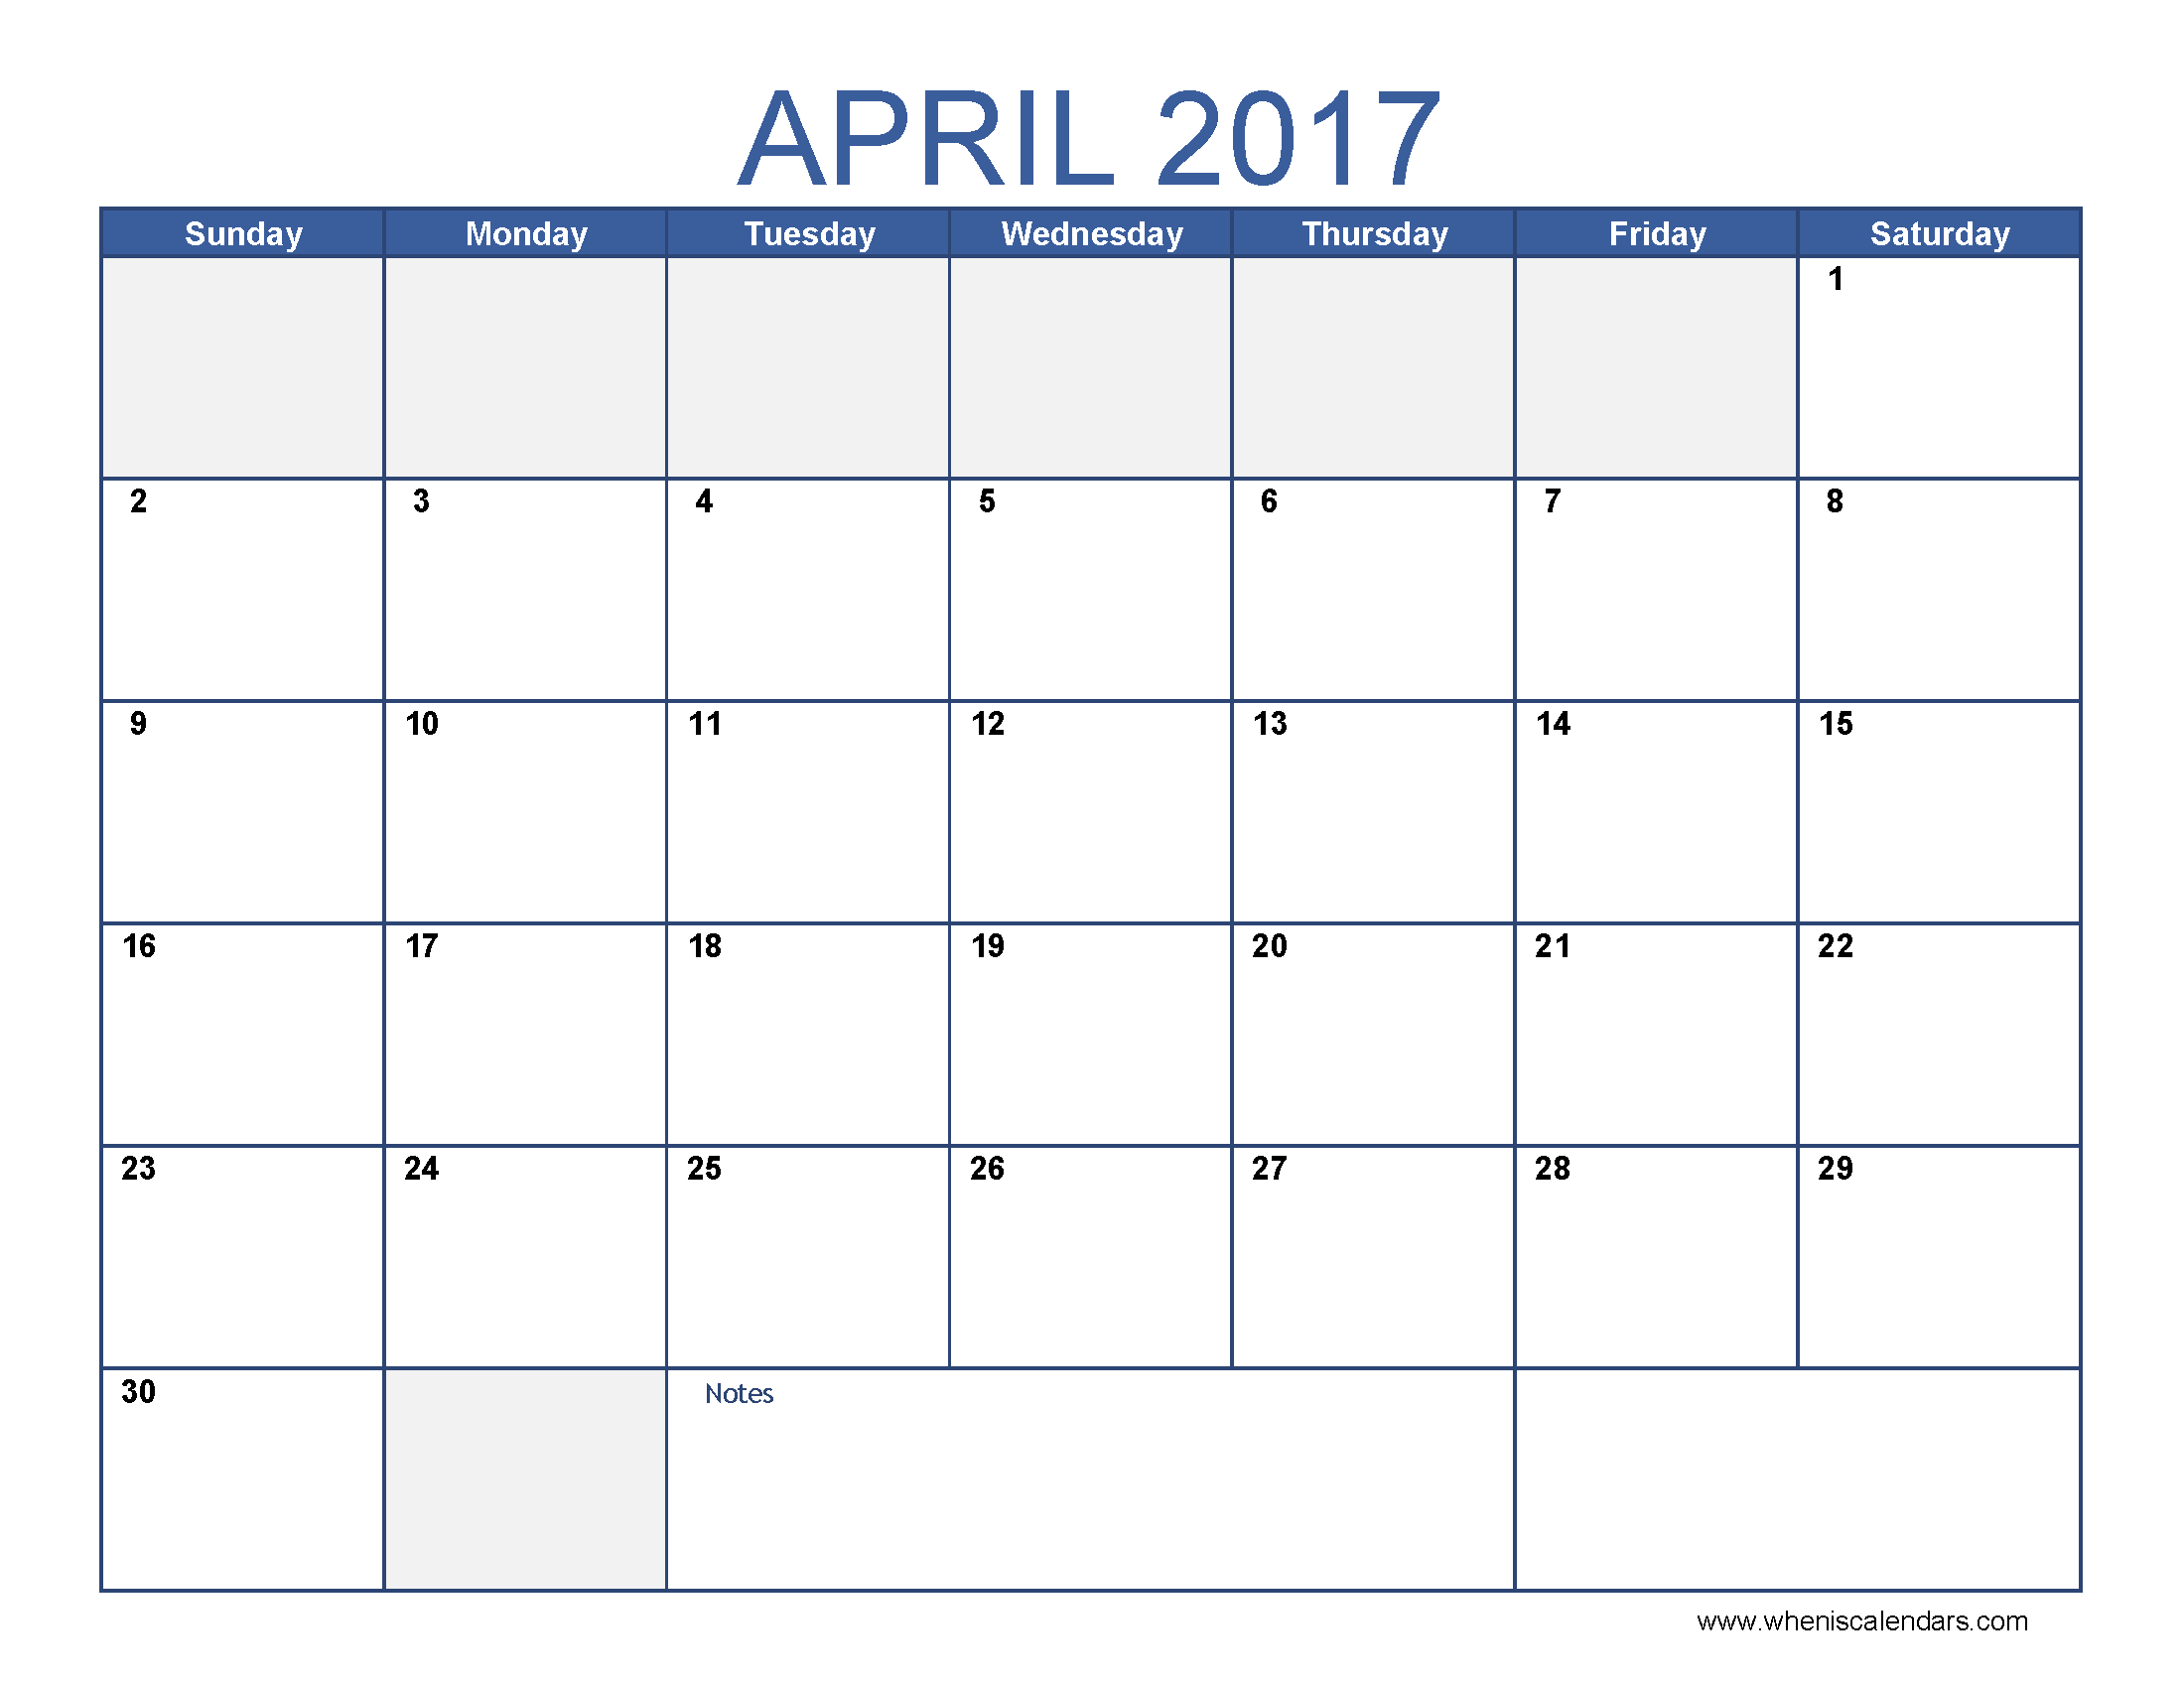 April Calendar Blank Template : April calendar templates for